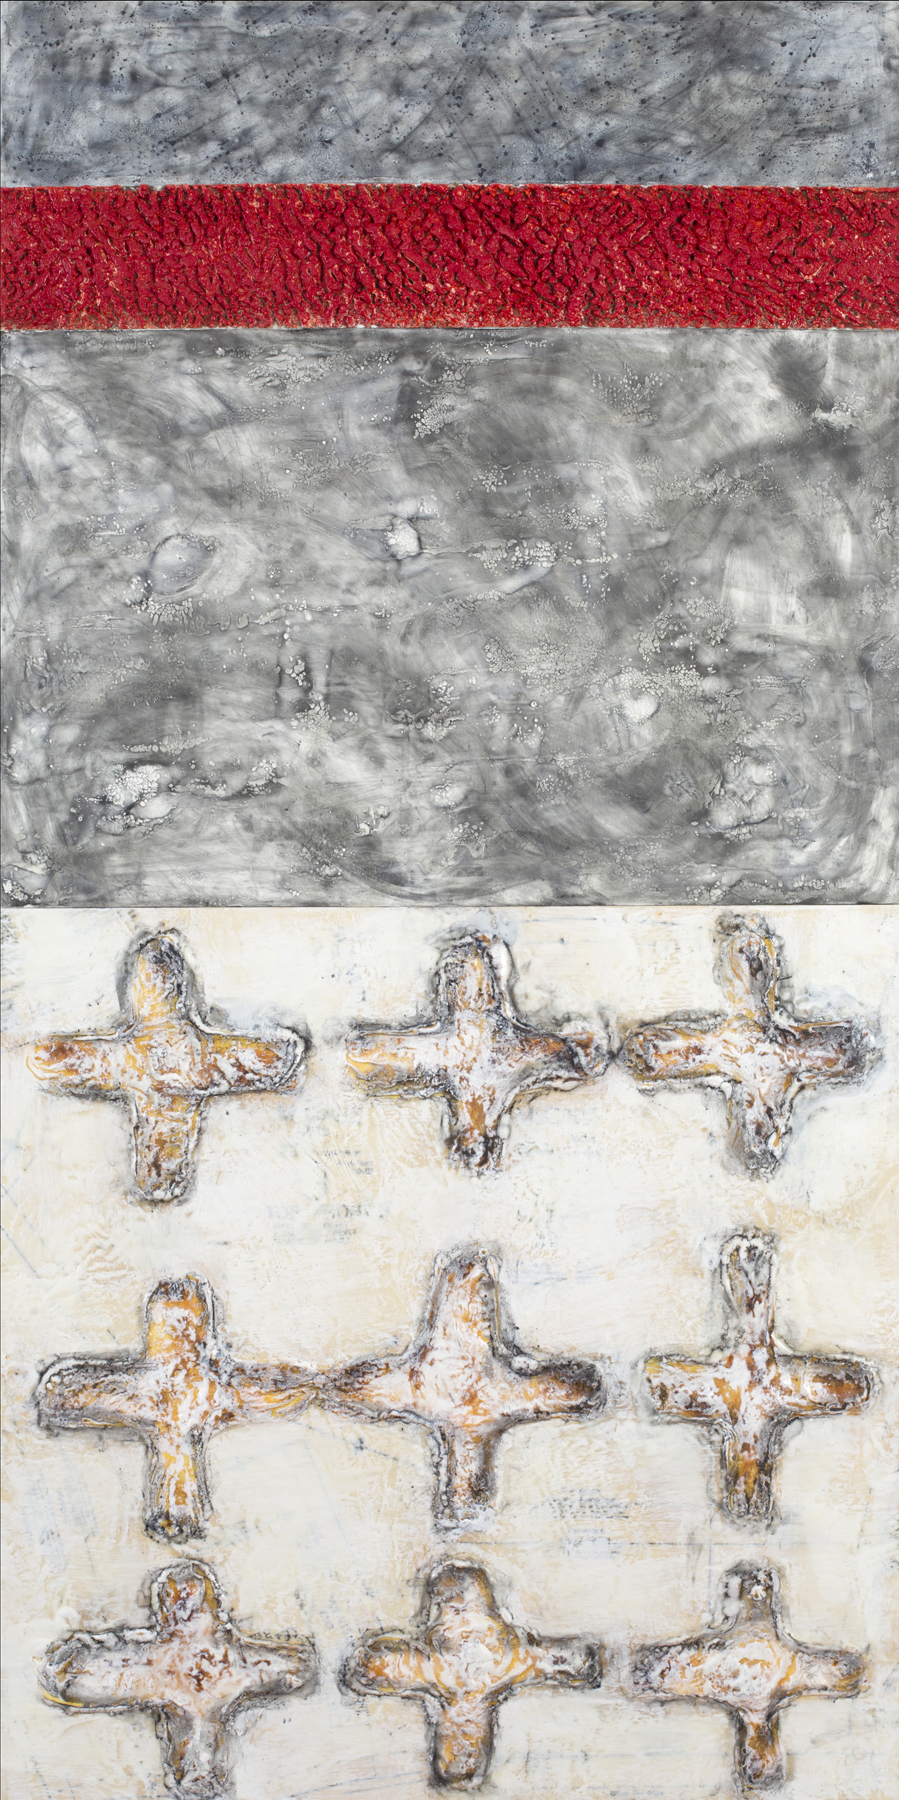 Cruciform Deconstruction 1 encaustic, graphite, wood glue, sewing patterns, 24x48""